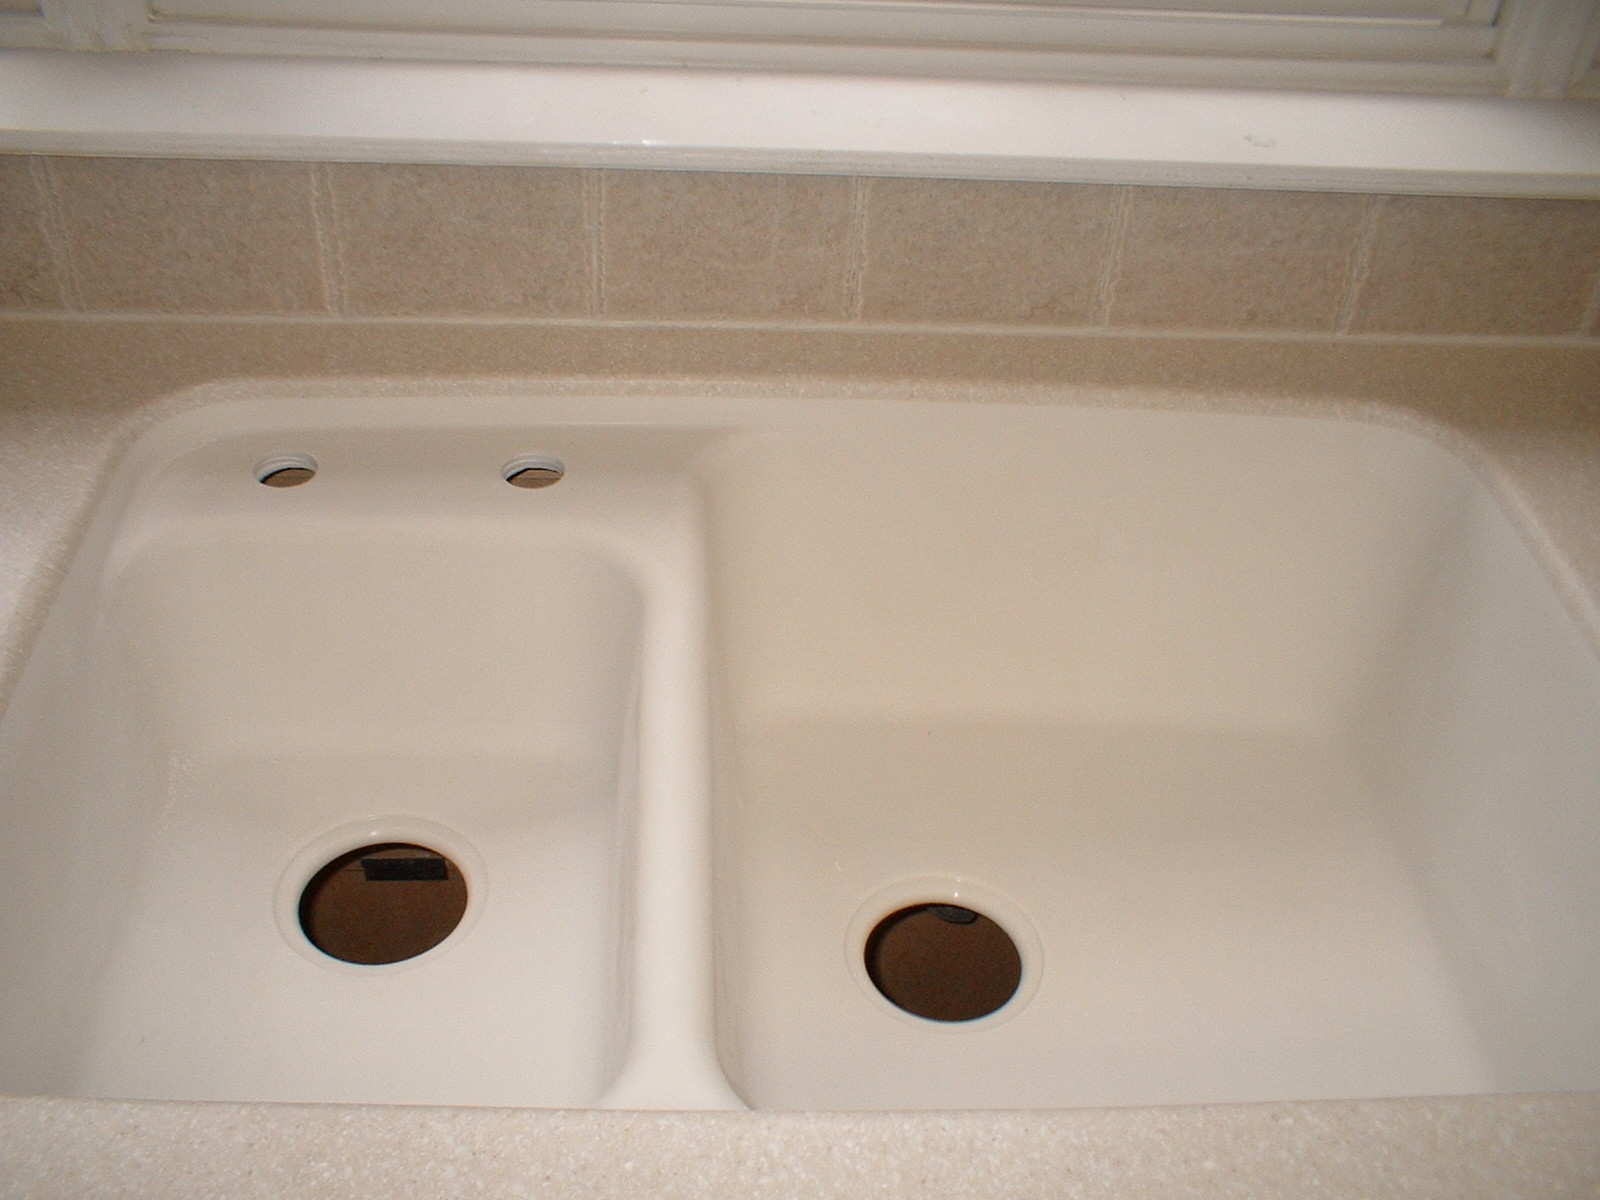 replace damaged sinks sink chipped sinksolid surface sink repair